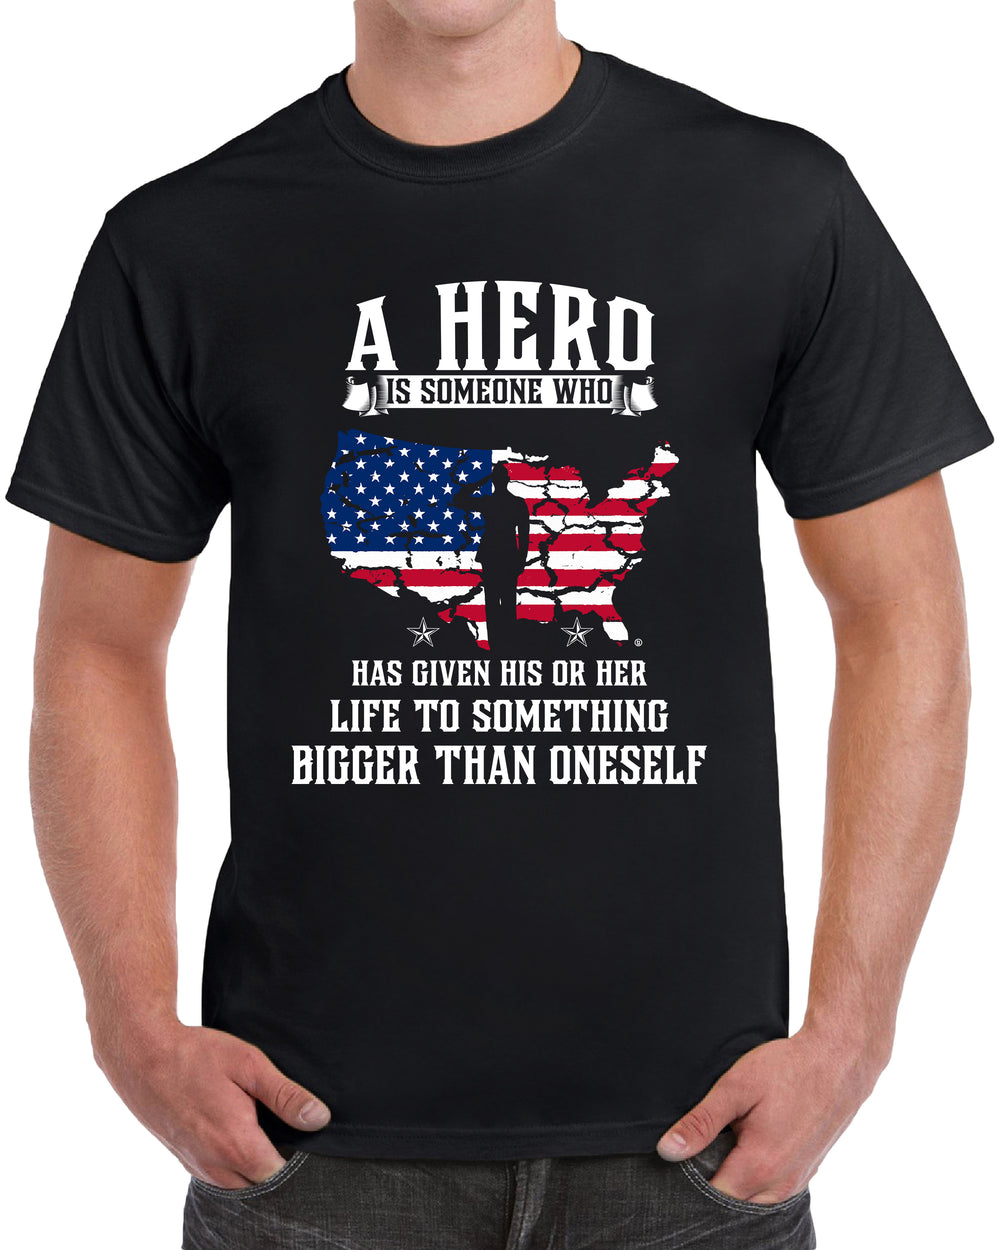 A Hero Is Someone Who Has Given His Or Her Life To Something Bigger Than Oneself